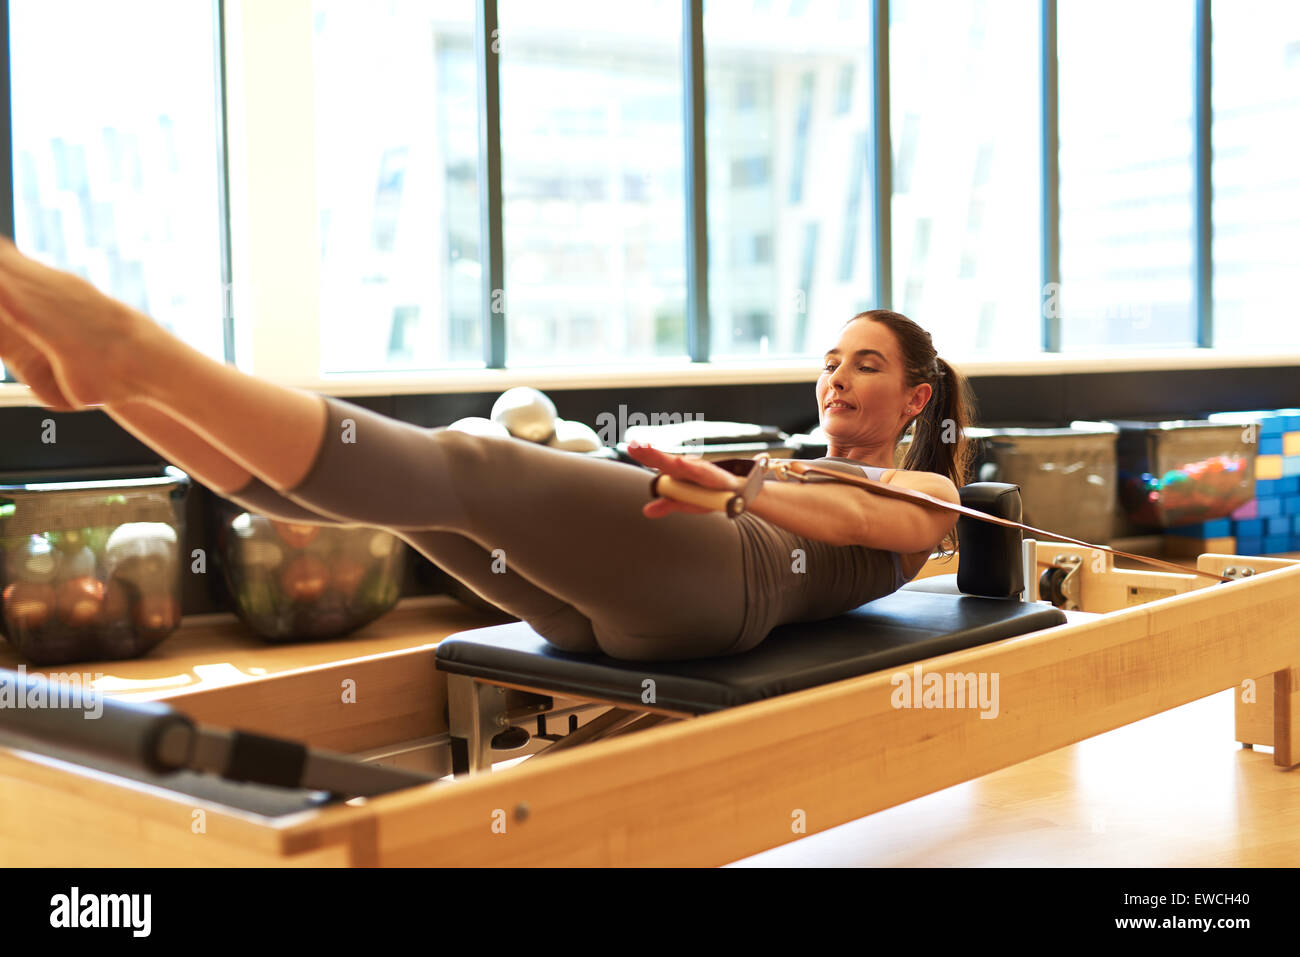 Healthy Smiling Brunette Woman Wearing Leotard Practicing Pilates in Bright Exercise Studio - Stock Image